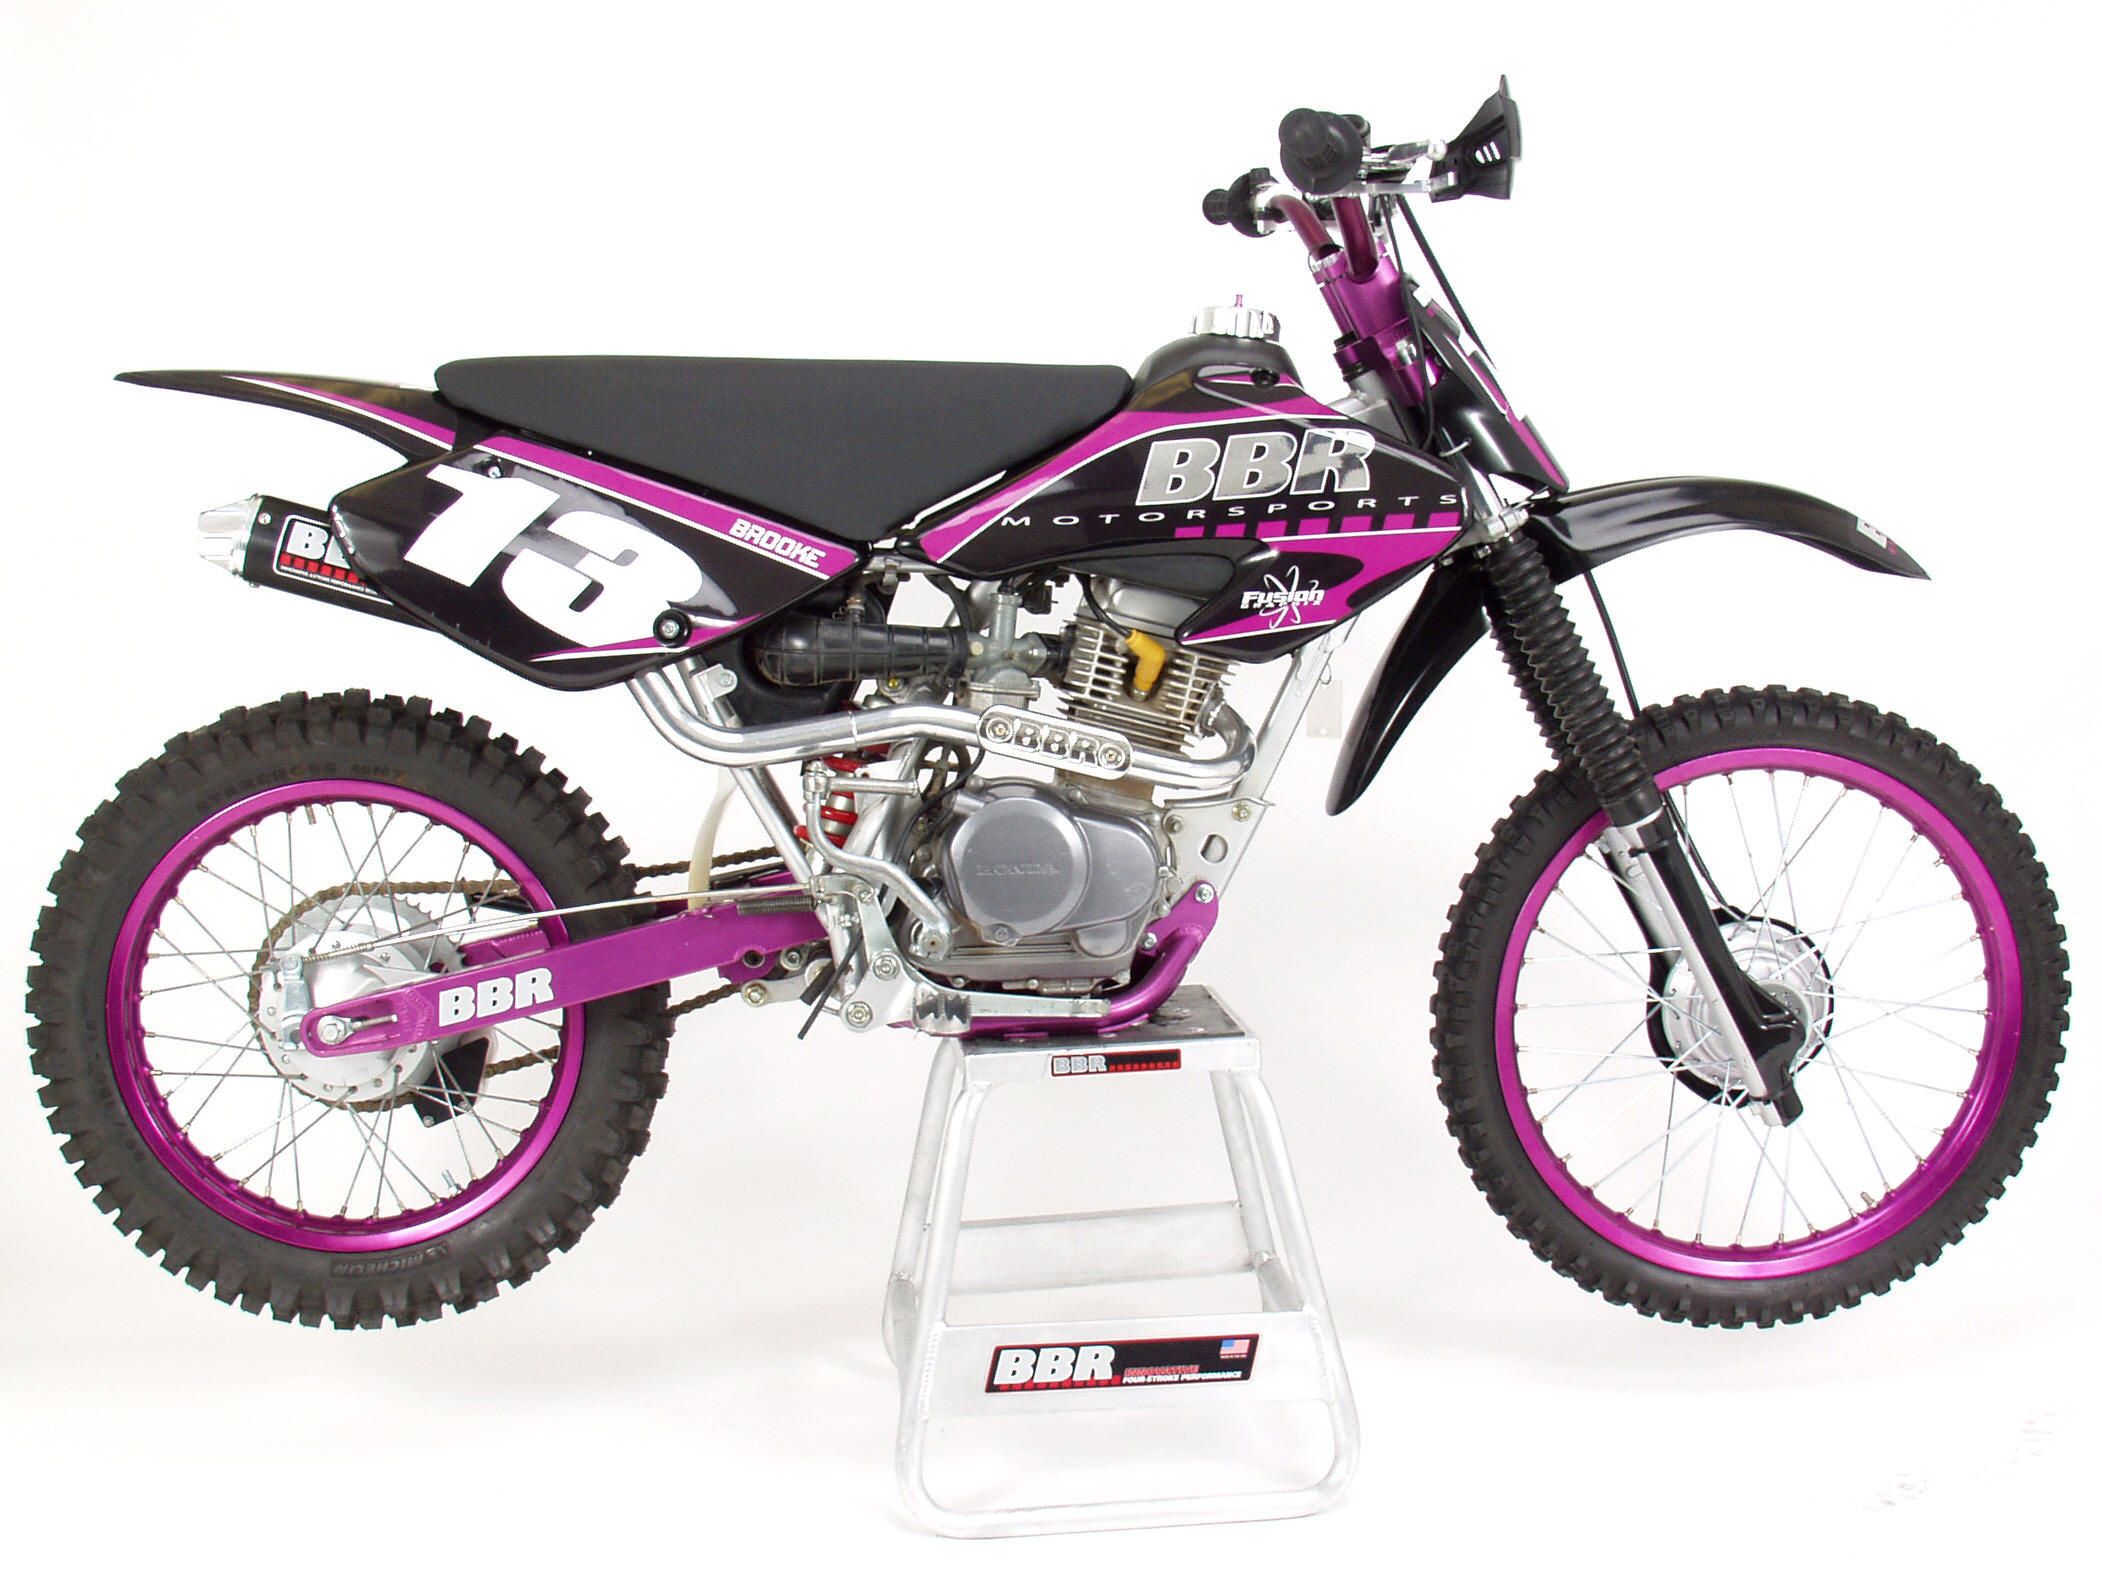 Bbr Motorsports Inc Bike Gallery Crf 150 Honda Dirt Bikes Brooke Davis Crf100